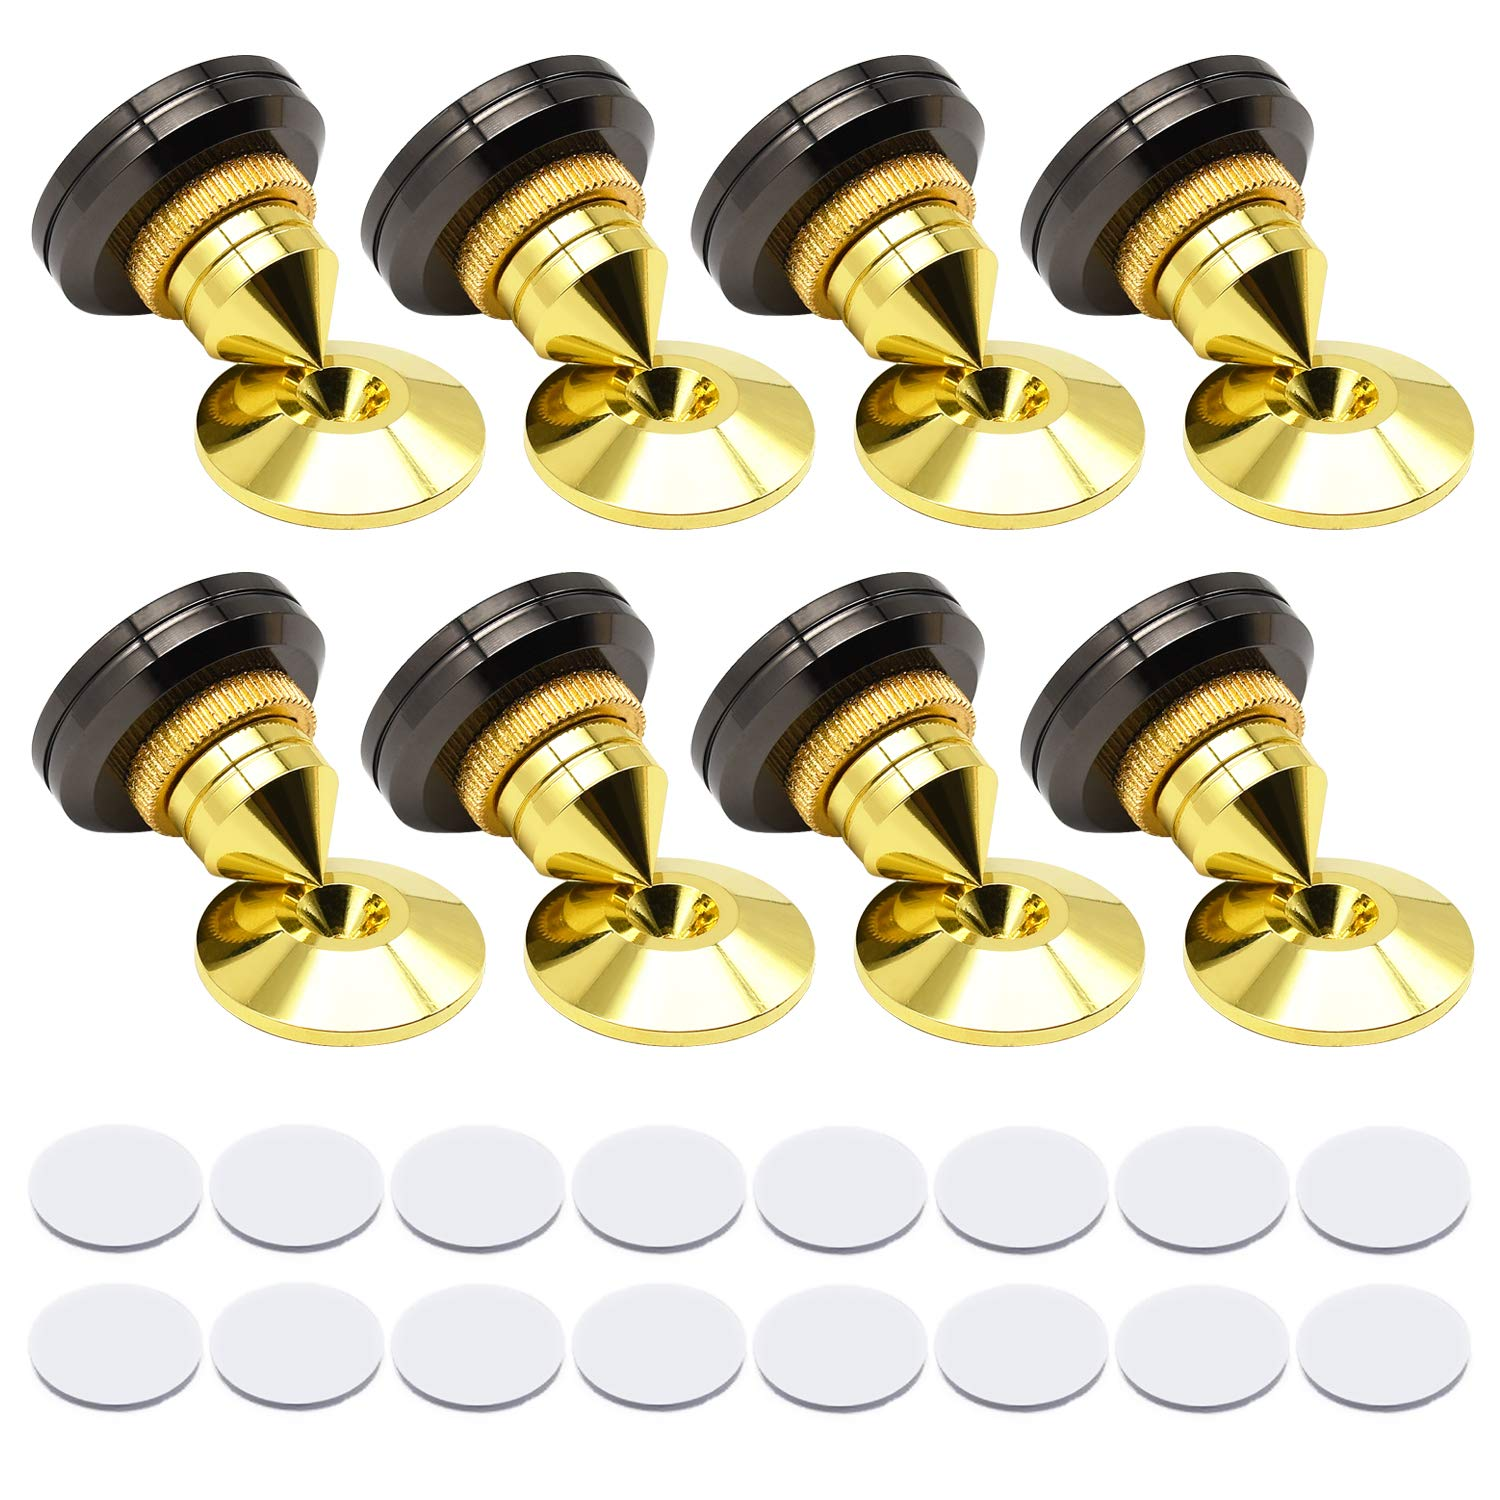 8 Set Golden Speaker Spikes, Speaker Stands Subwoofer CD Audio Amplifier Turntable Isolation Stand Feet Cone Base Pads by Awpeye